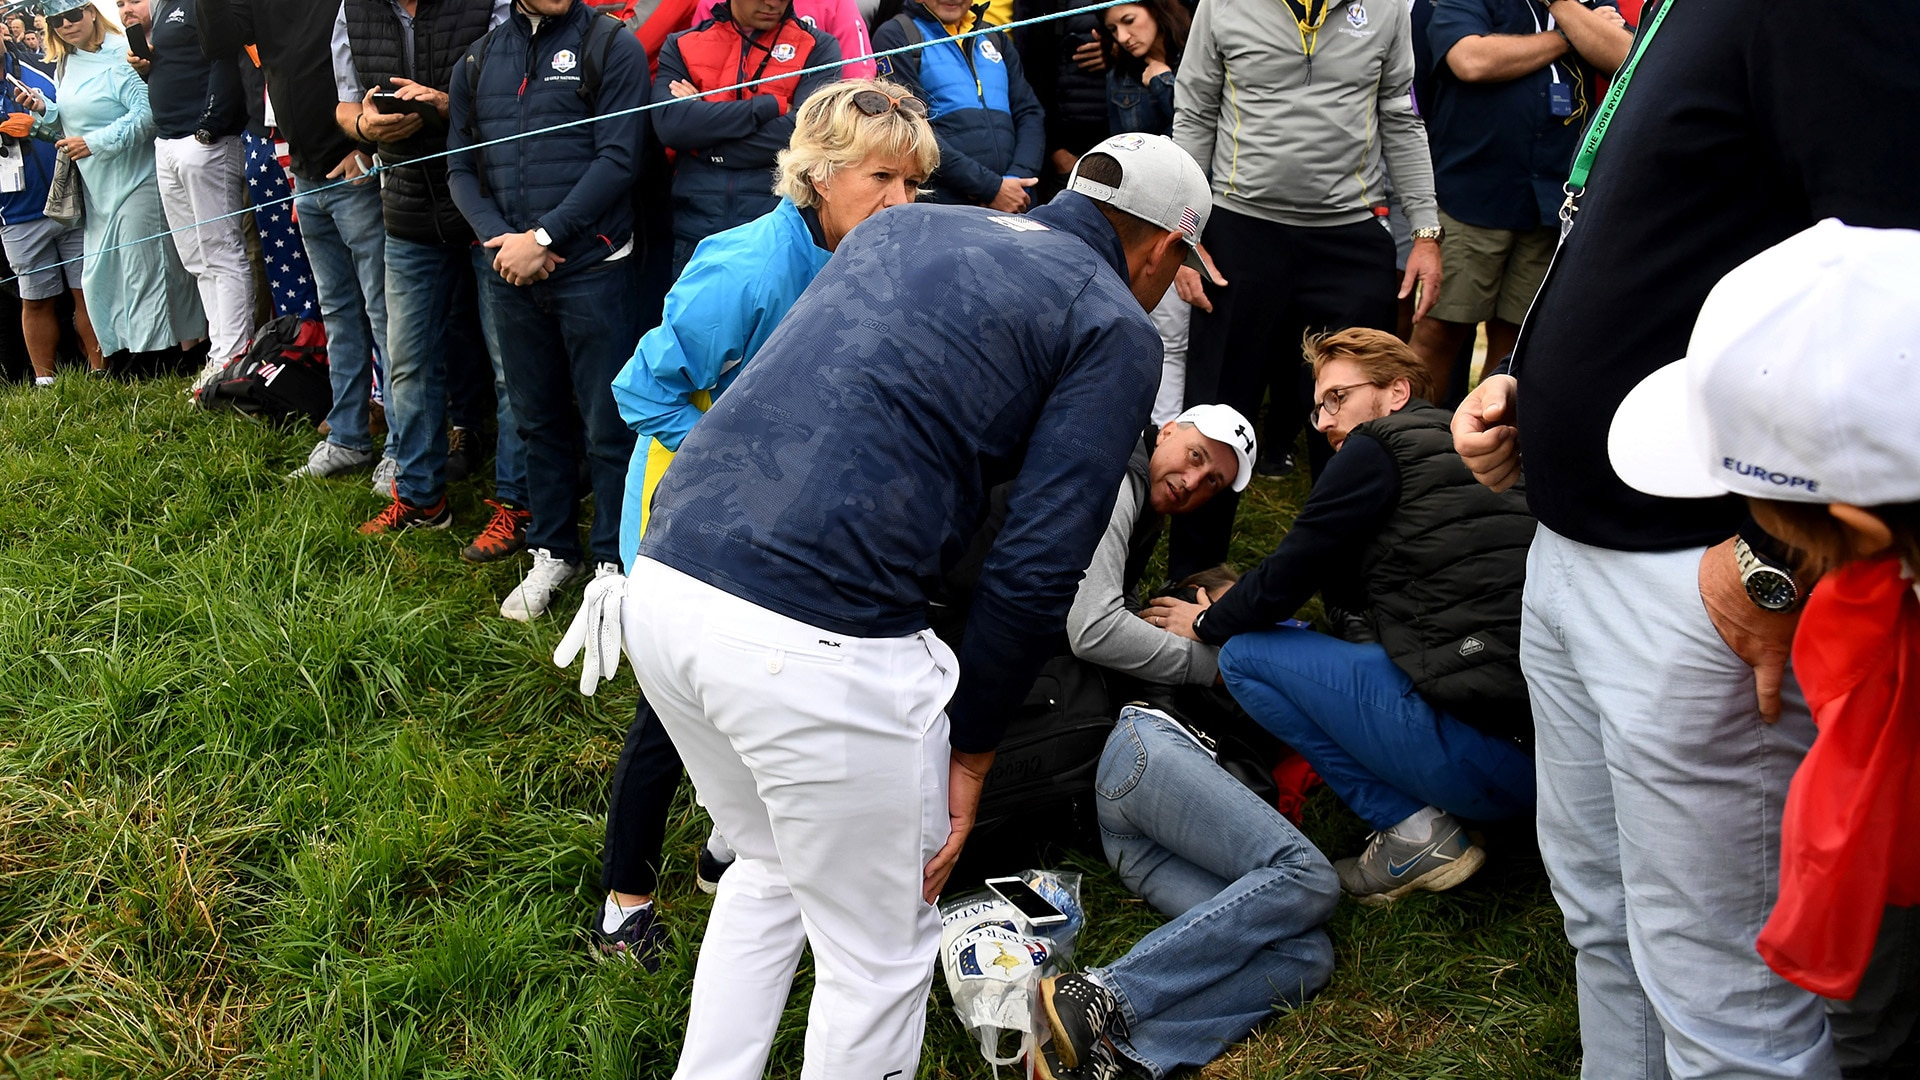 Brooks Koepka feared he might have blinded spectator